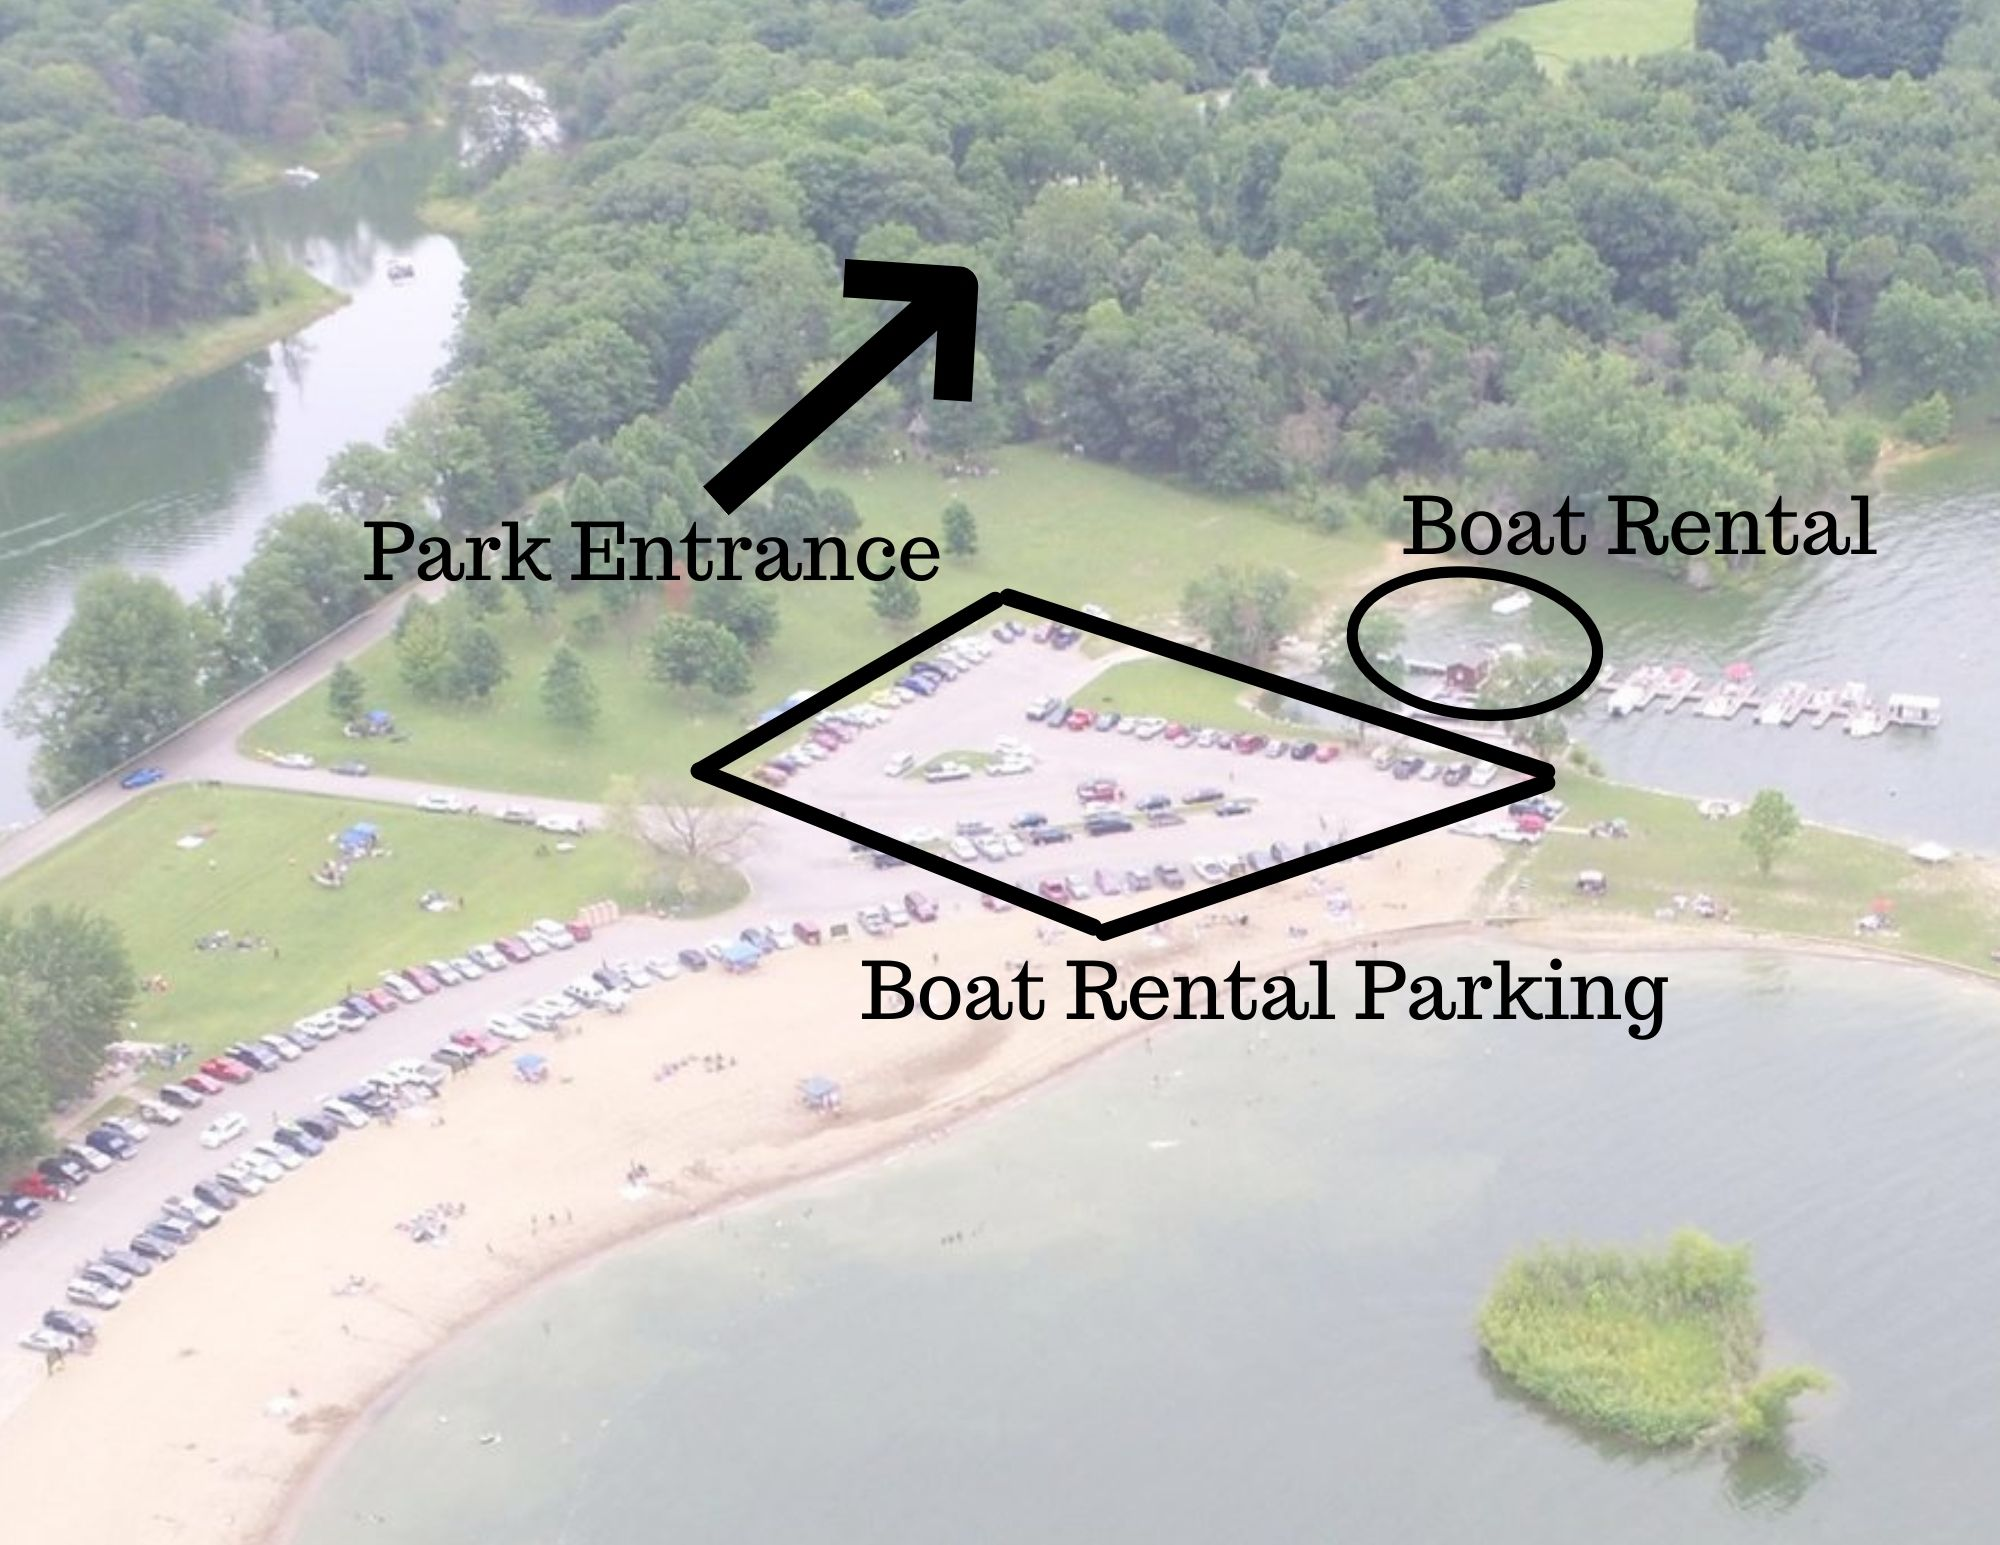 Do not park in the employee parking lot or block the entrance.